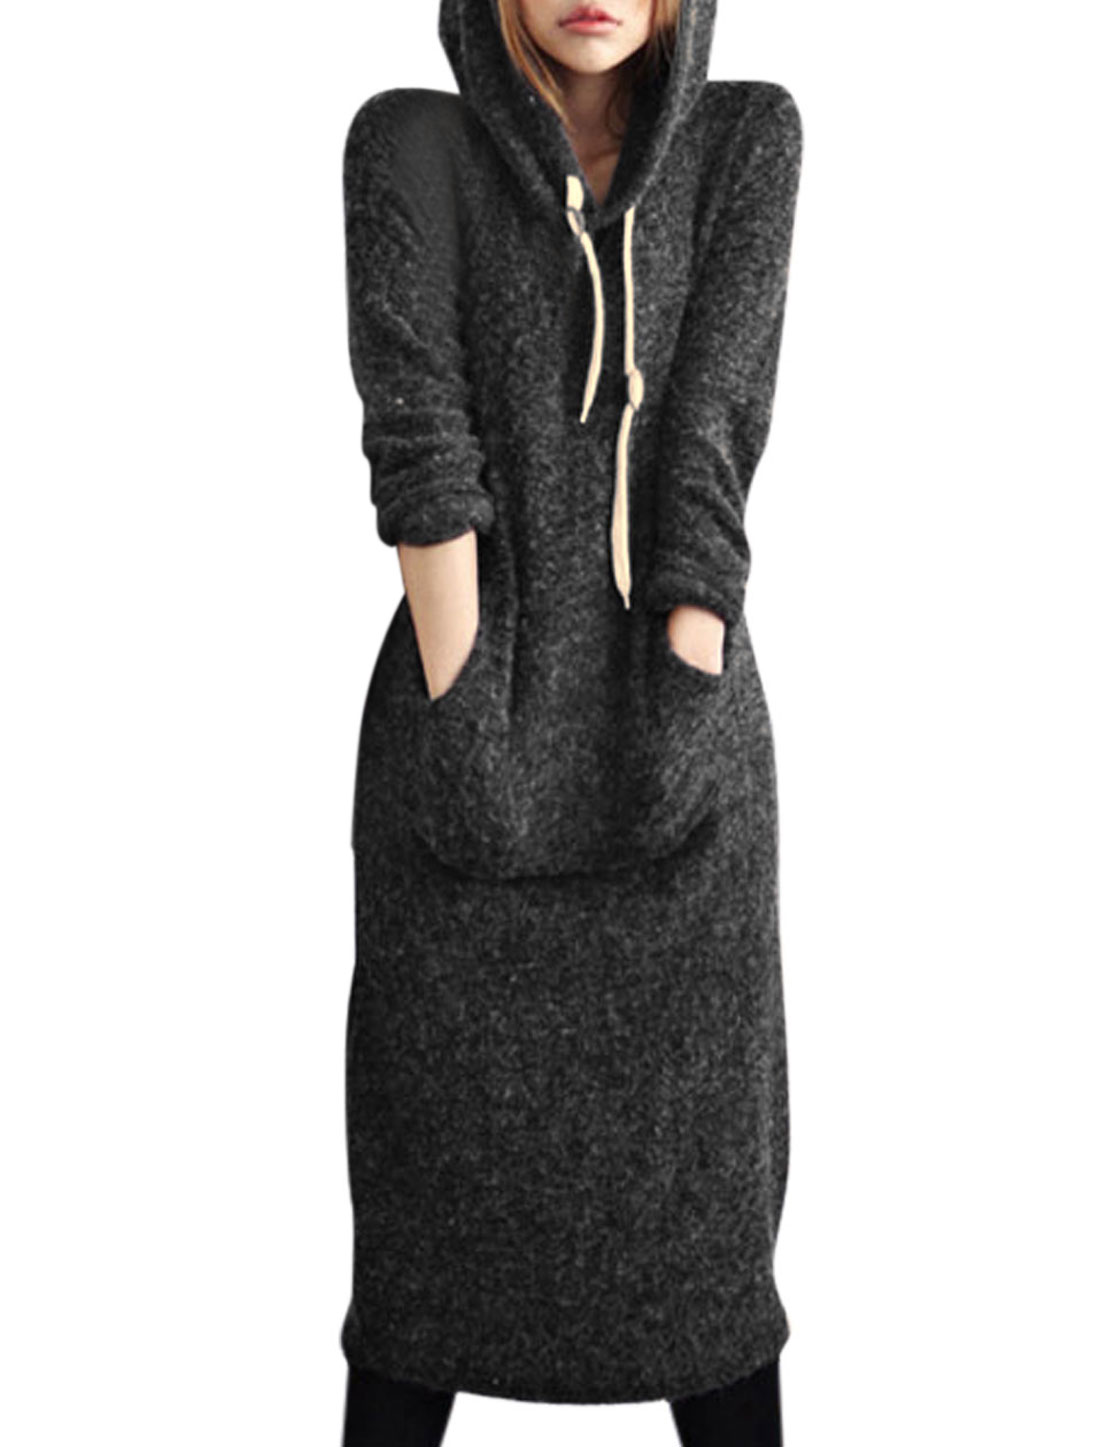 Women Hooded Kangaroo Pocket Casual Knit Midi Dresses Dark Gray M